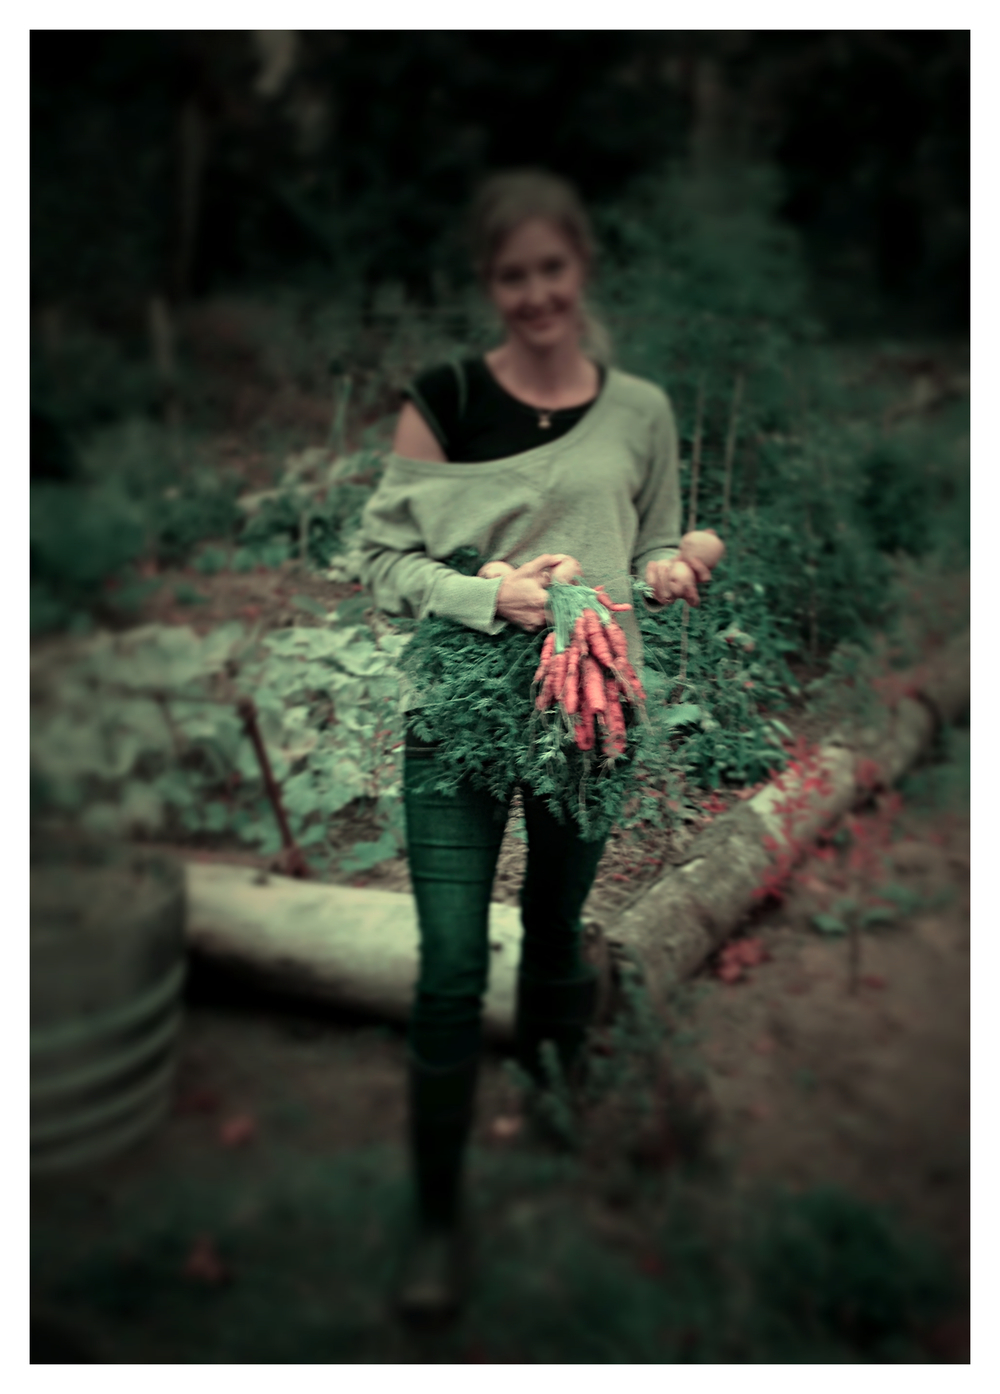 Carrots and potatoes for dinner -- as it is and so very grateful for it (and look at that bounty of garden behind me! Wowza!)